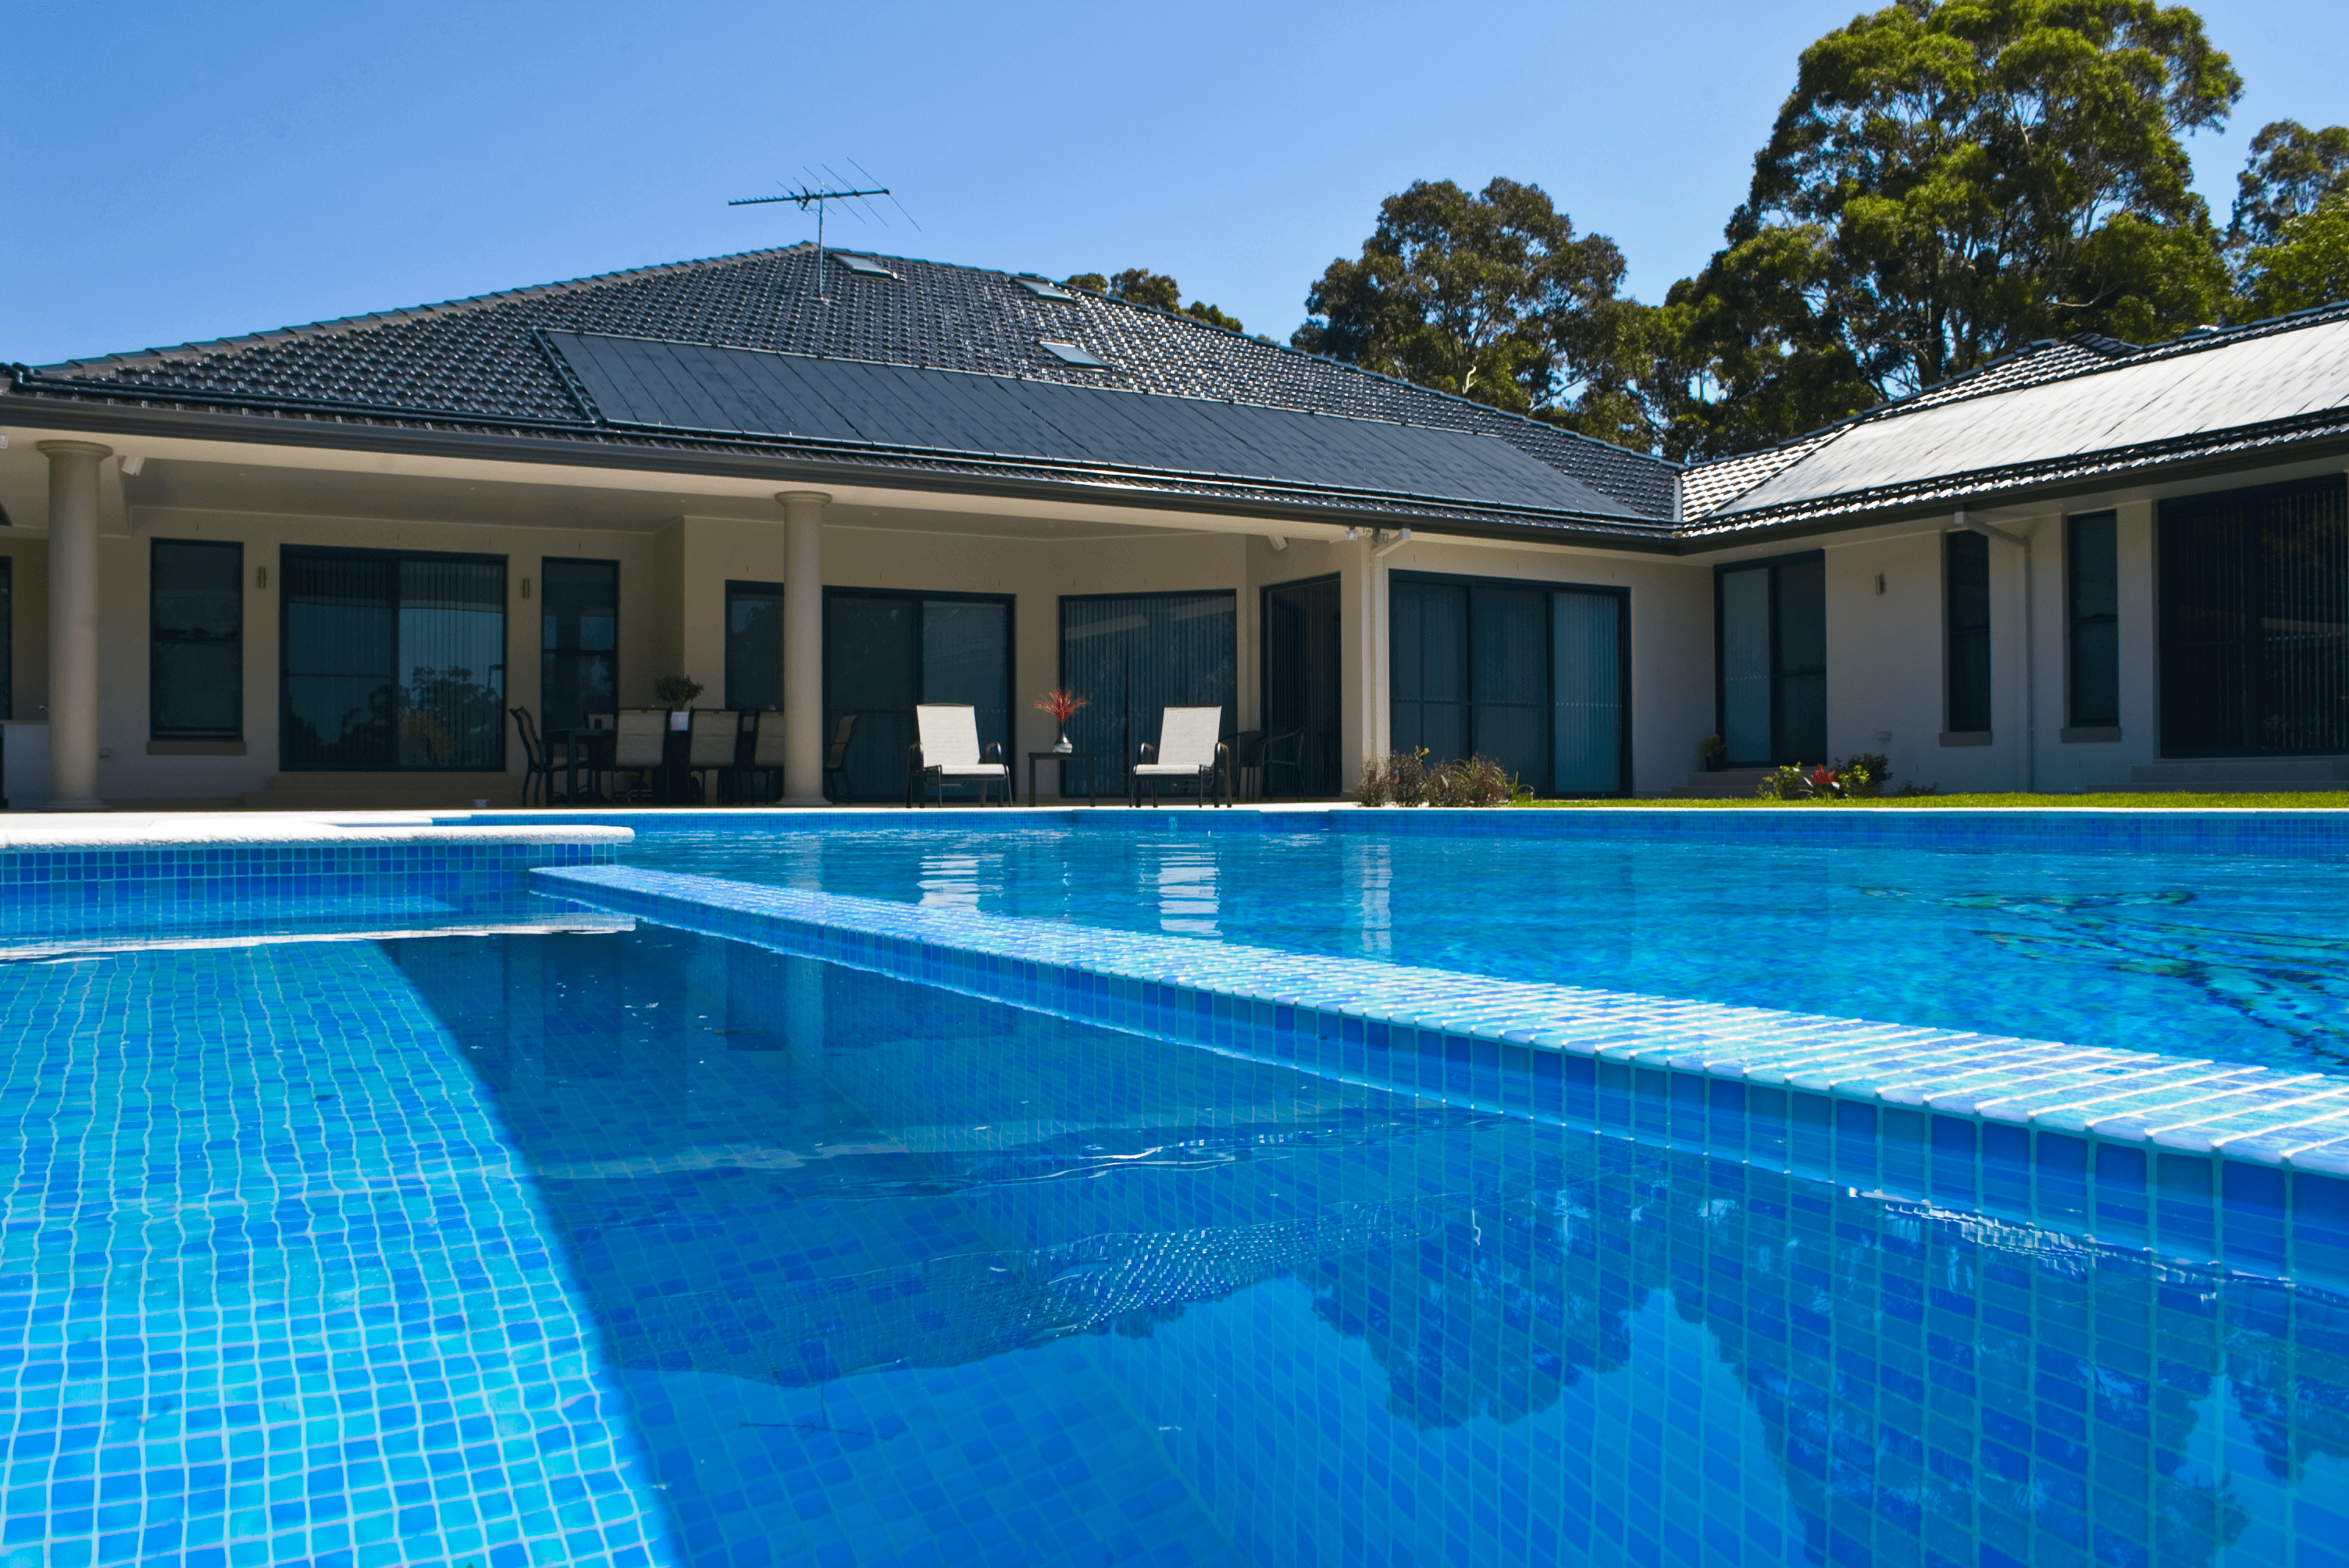 House with solar pool heating panels